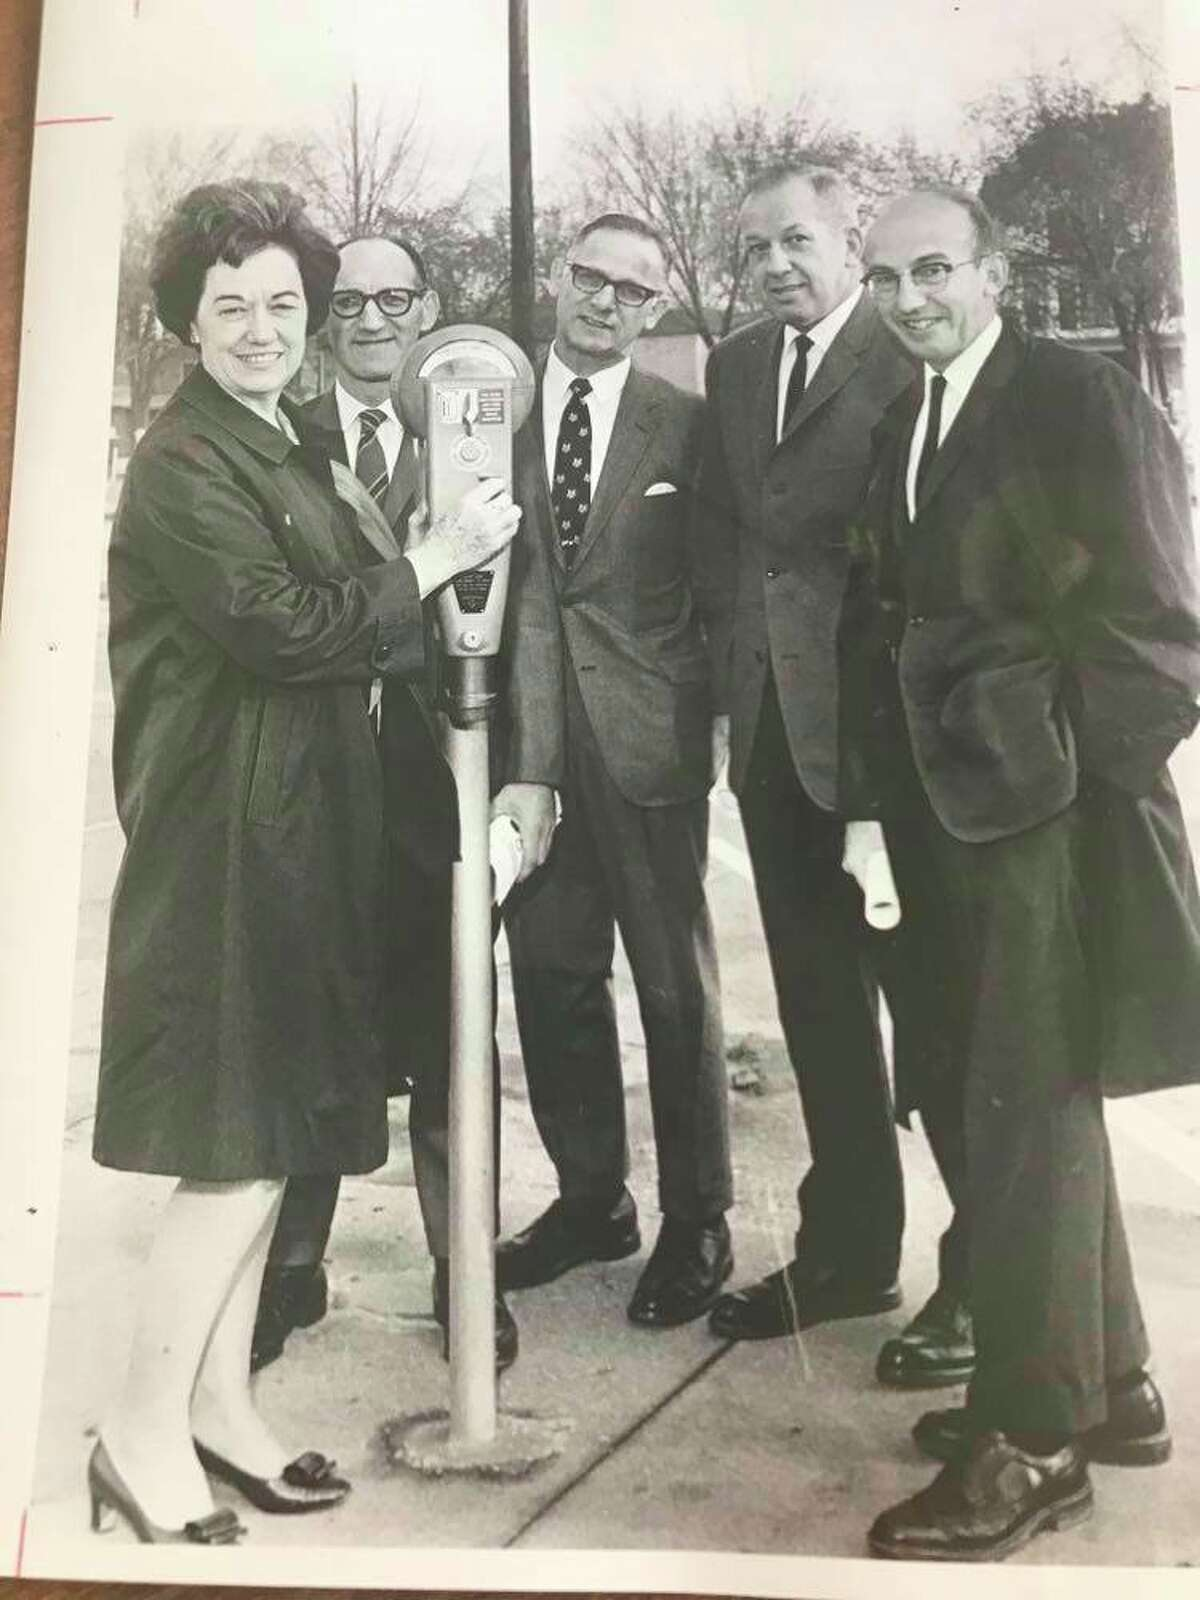 Julius Grosberg, owner of Jay's Mens and Boys Wear, second from left, Marvin Stein, president of Midland Downtown Business Association, third from left, and William H. Meier, far right. Others unknown. Thank you to reader G. Thomas Snyder for updated information.